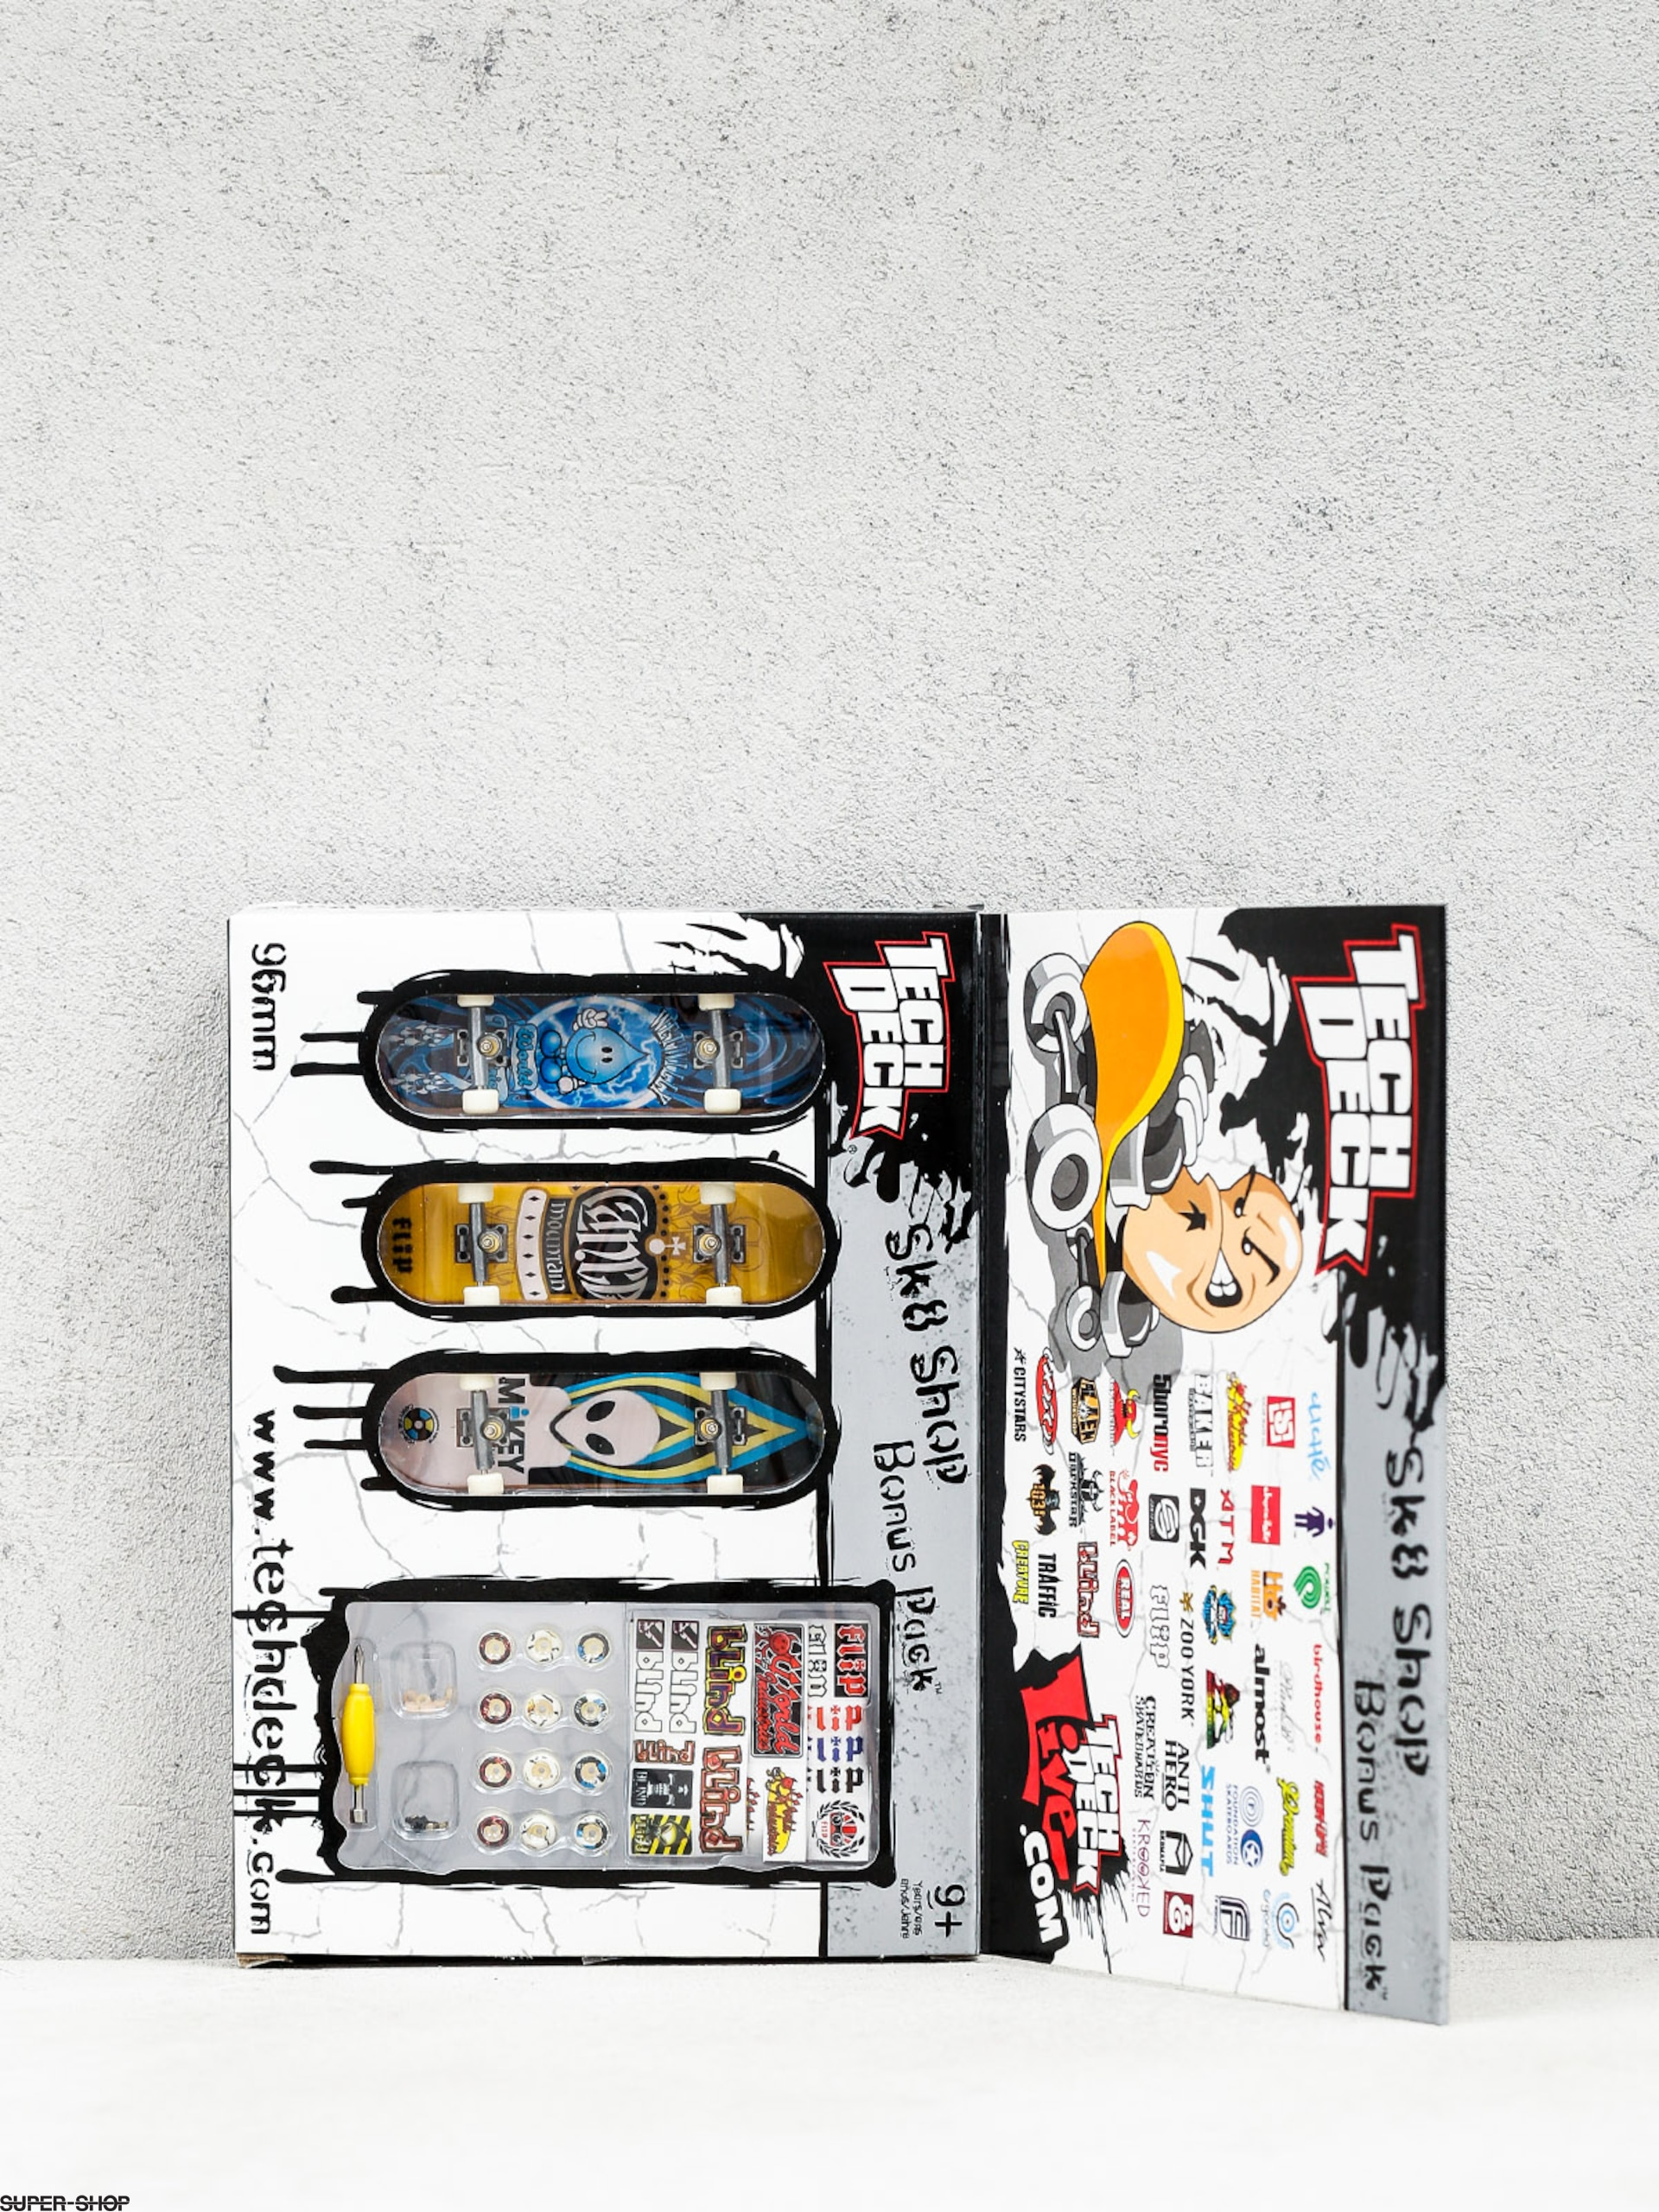 hight resolution of 852979 w1920 tech deck set sk8 shop bonus pack willy lance mikey jpg